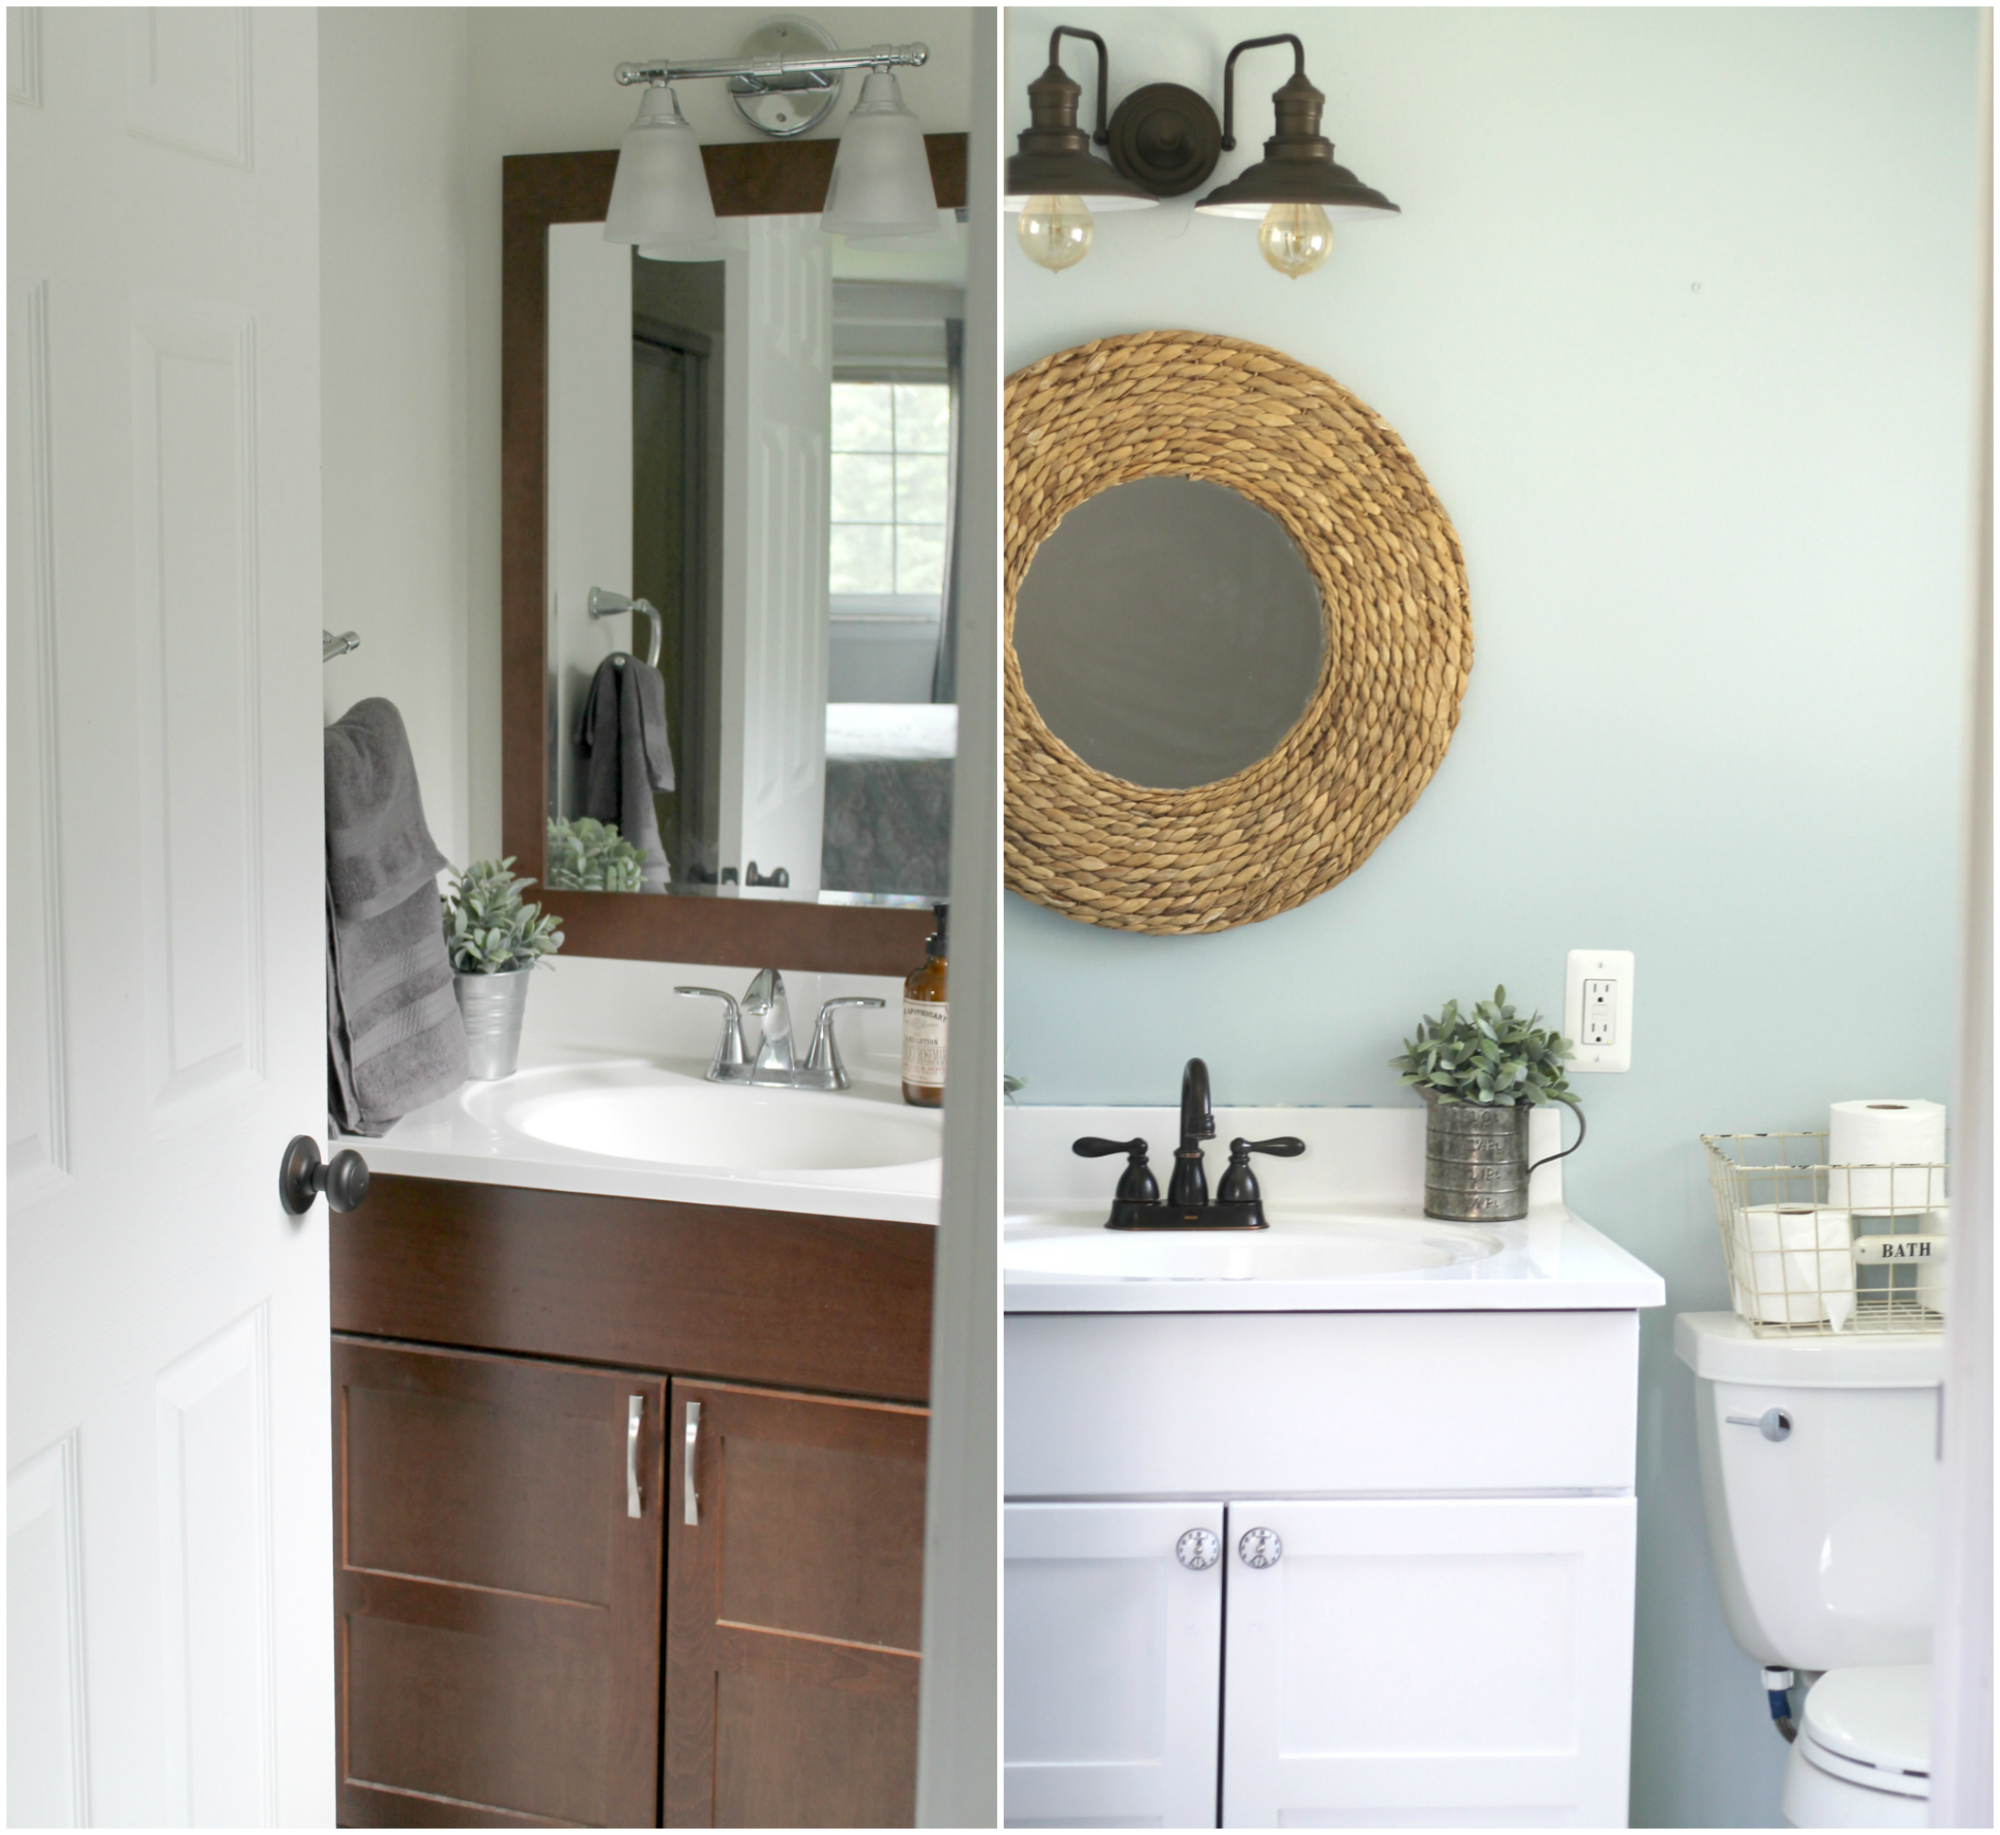 Before And After Bathroom Makeovers On A Budget: Budget-Friendly Small Bathroom Makeover